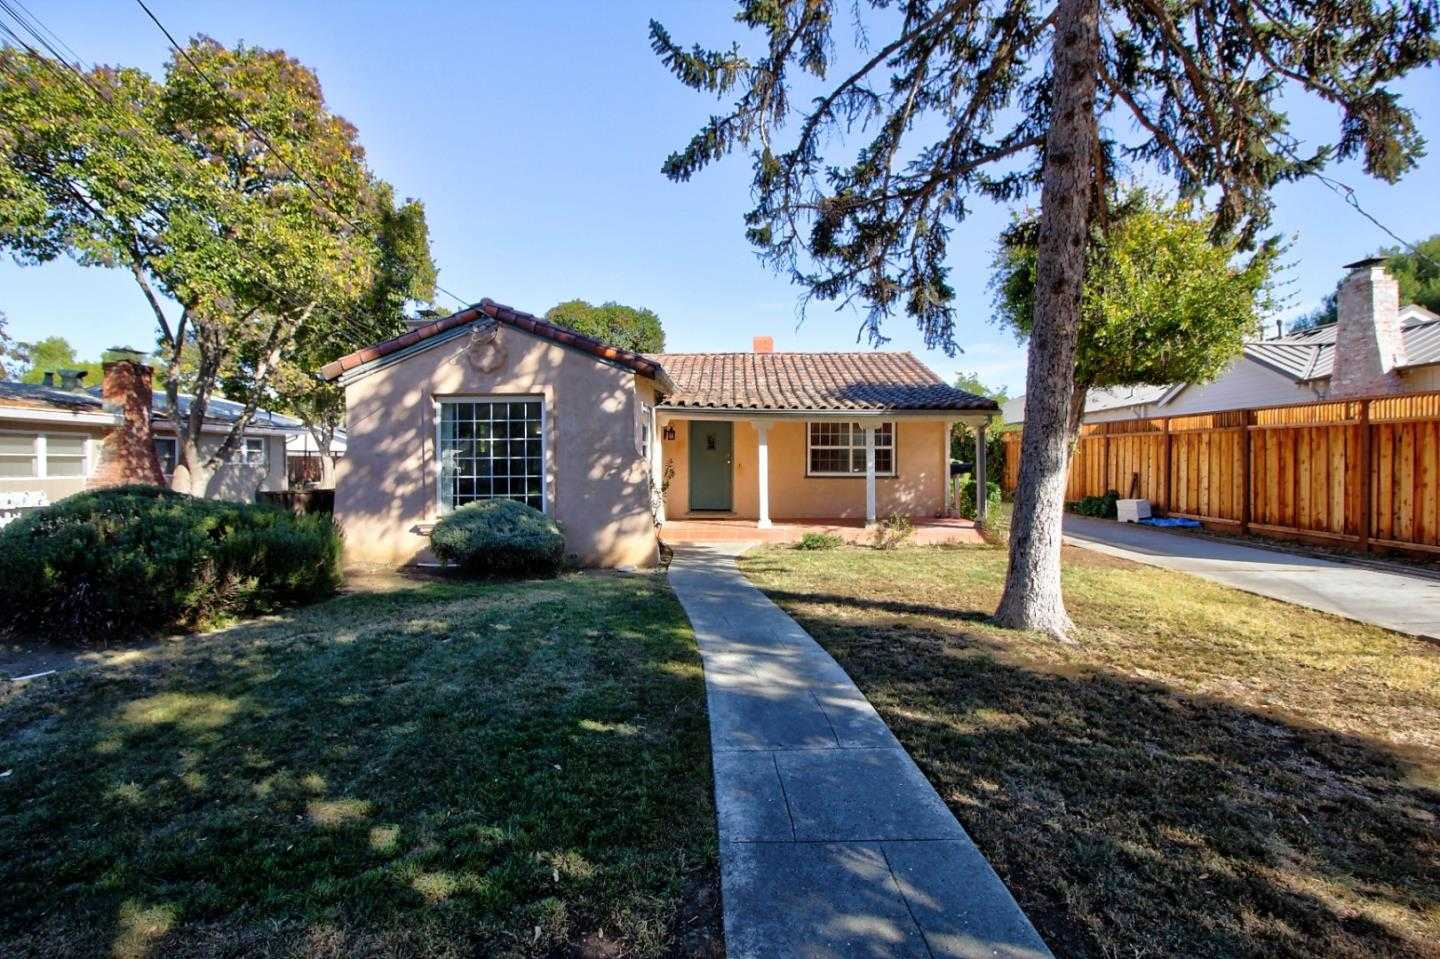 $1,500,000 - 2Br/1Ba -  for Sale in San Jose